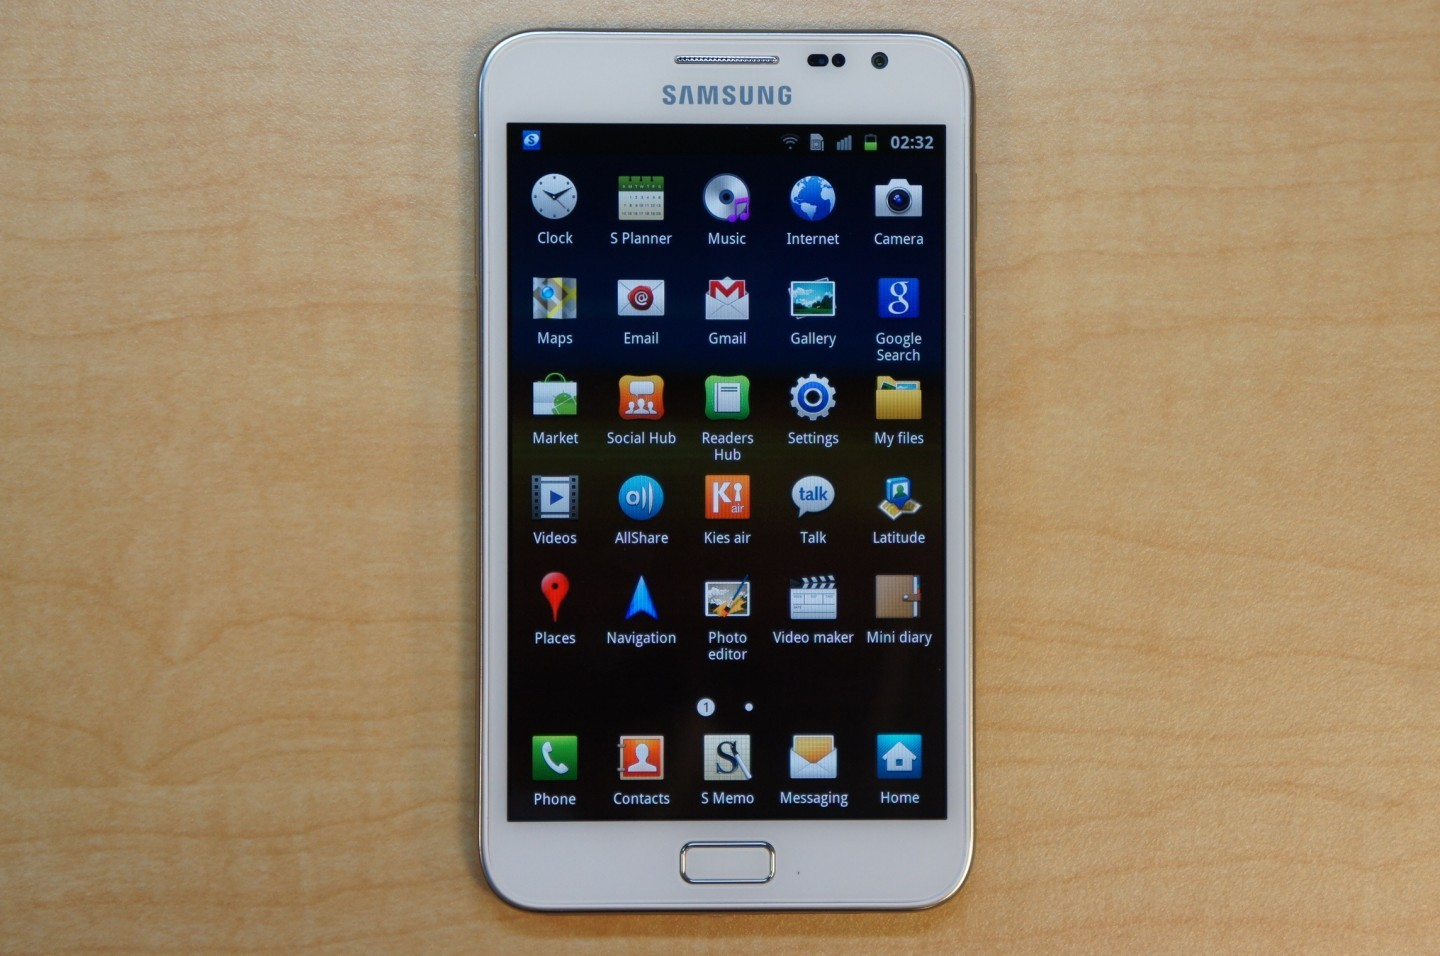 Samsung Galaxy Note 4 Pre-launch Review